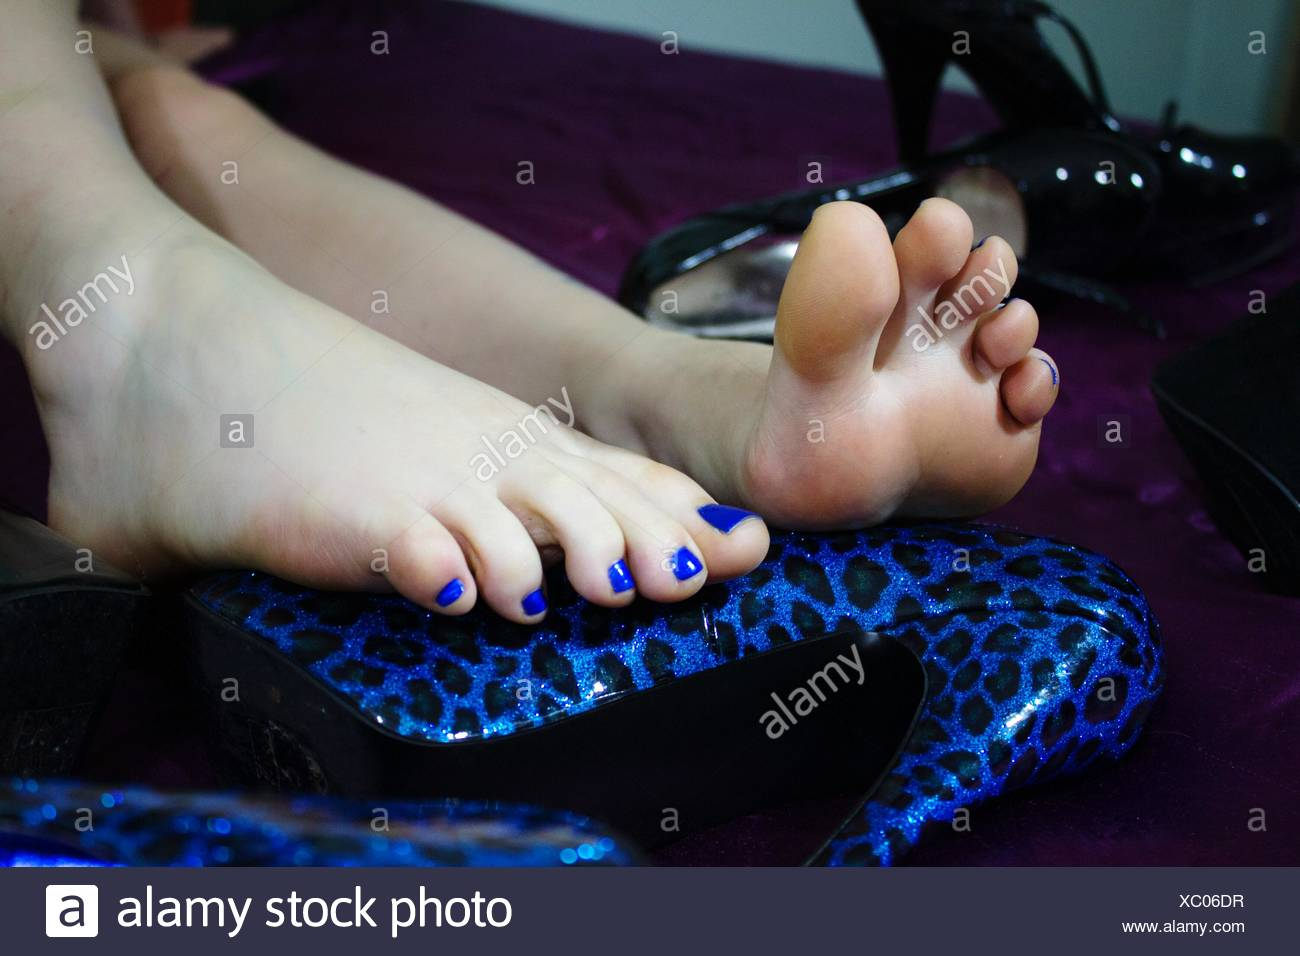 Low Section Of Woman With Blue Nail Polish Resting On Stiletto - Stock Image